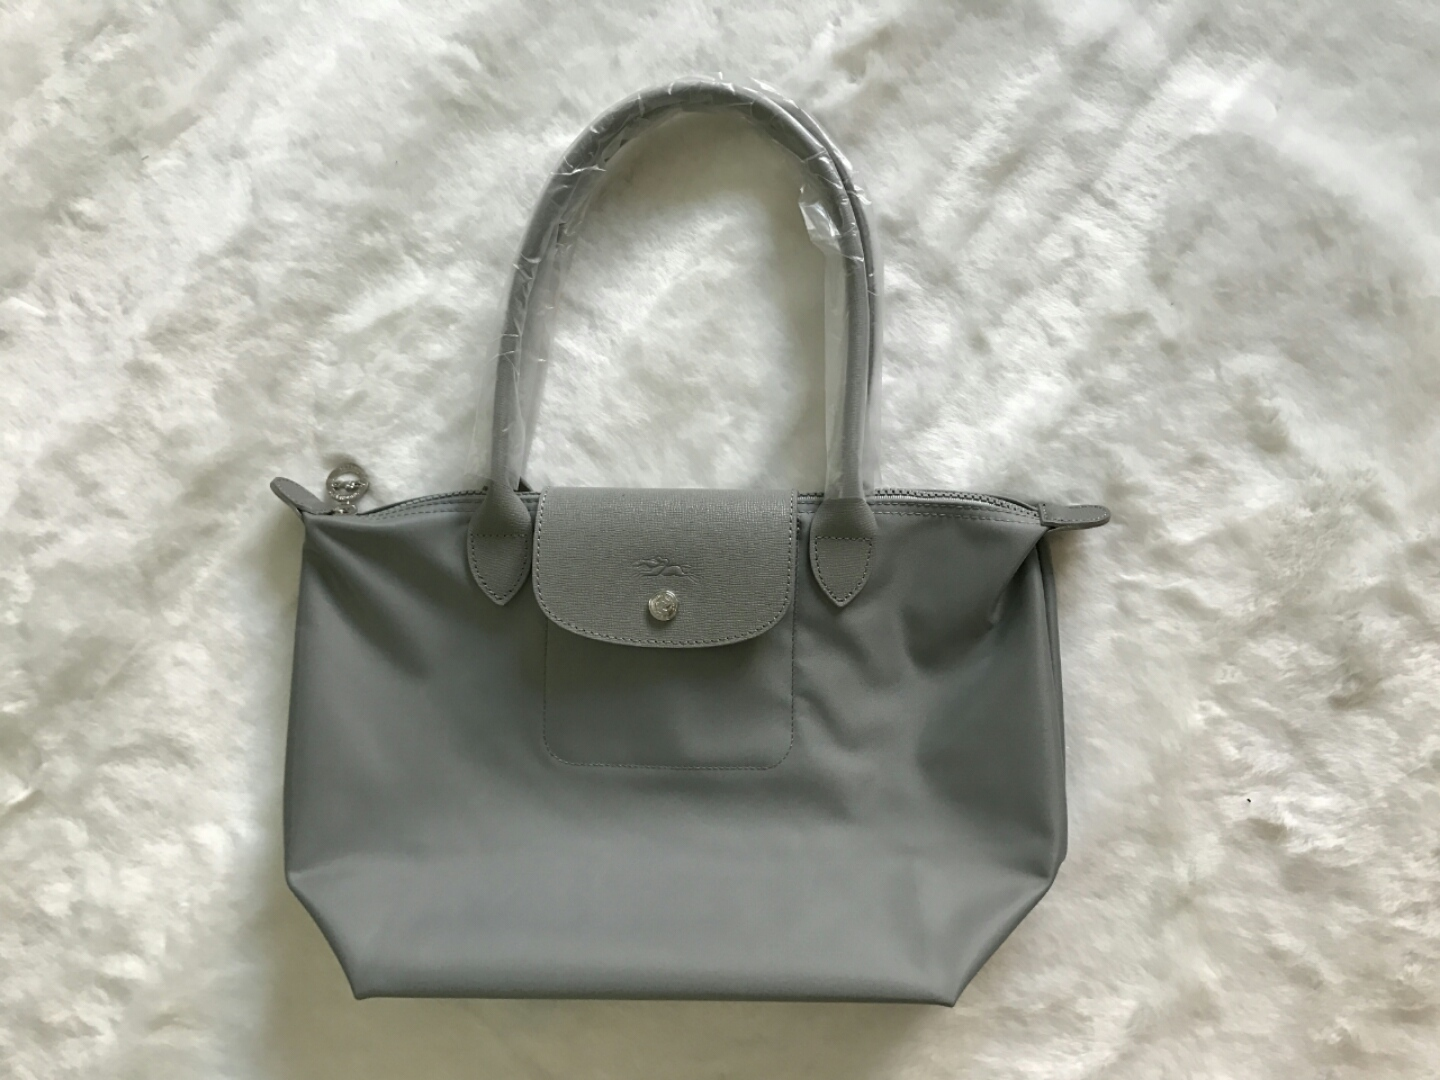 Longchamp Le Pliage Neo Small Tote Bag and 27 similar items. 1549895397652 6b38213c22661